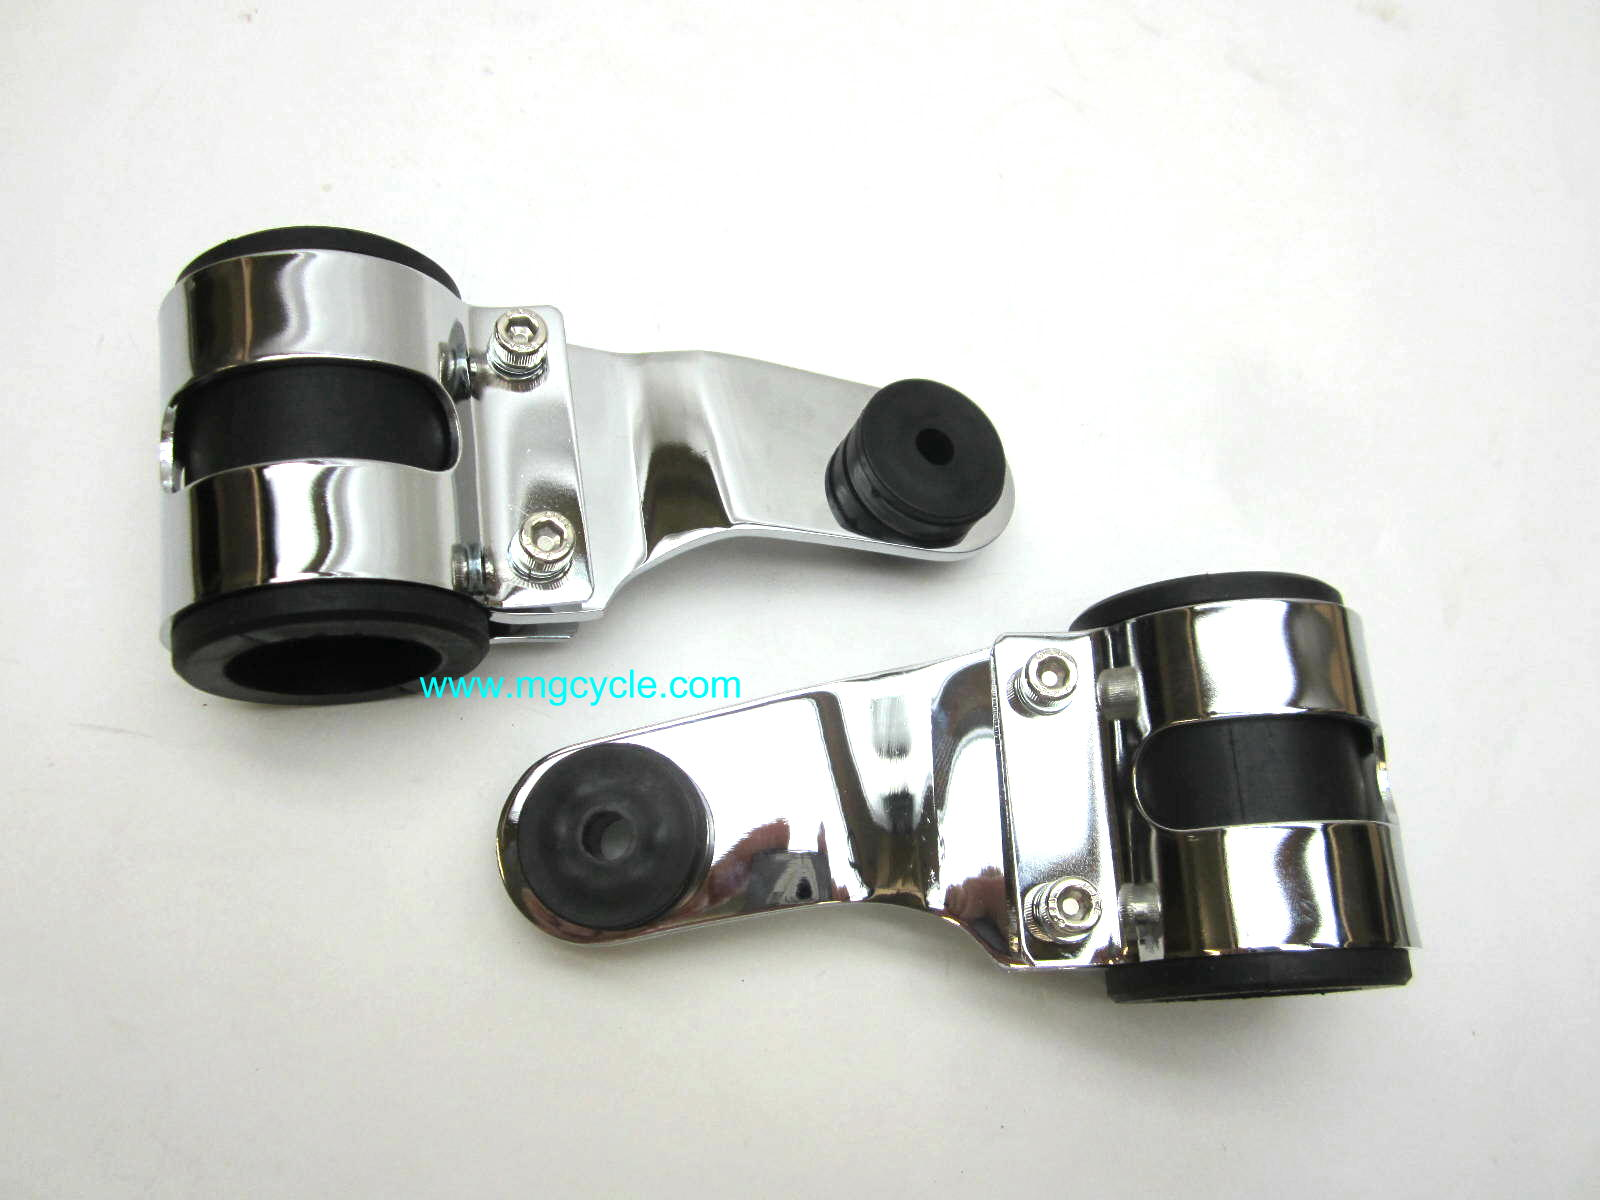 euro-style headlight mounting brackets, 35mm-41mm